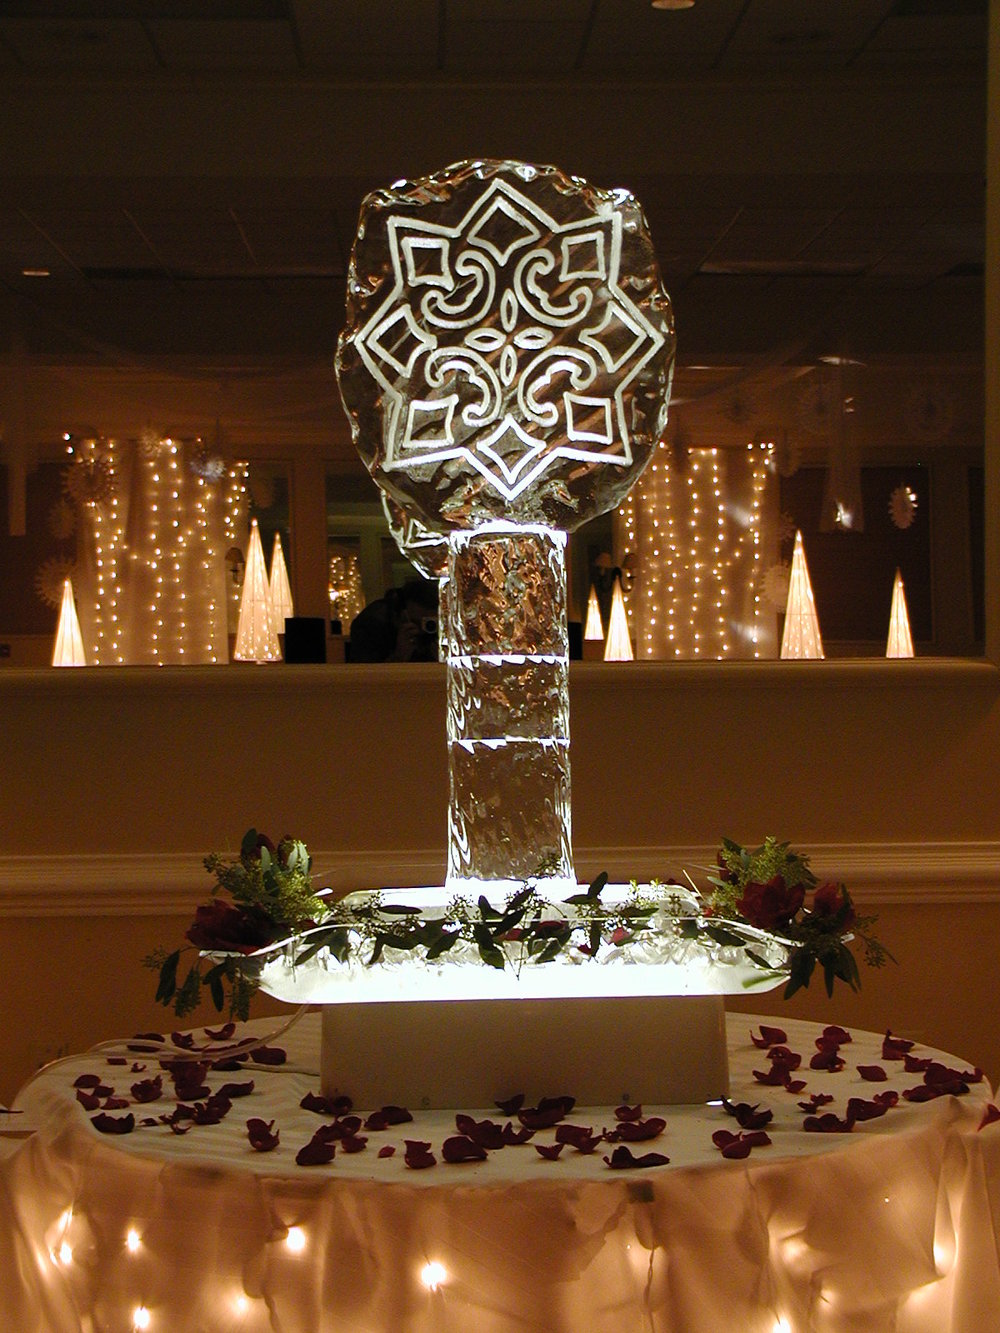 The Magic of Ice Sculptures!